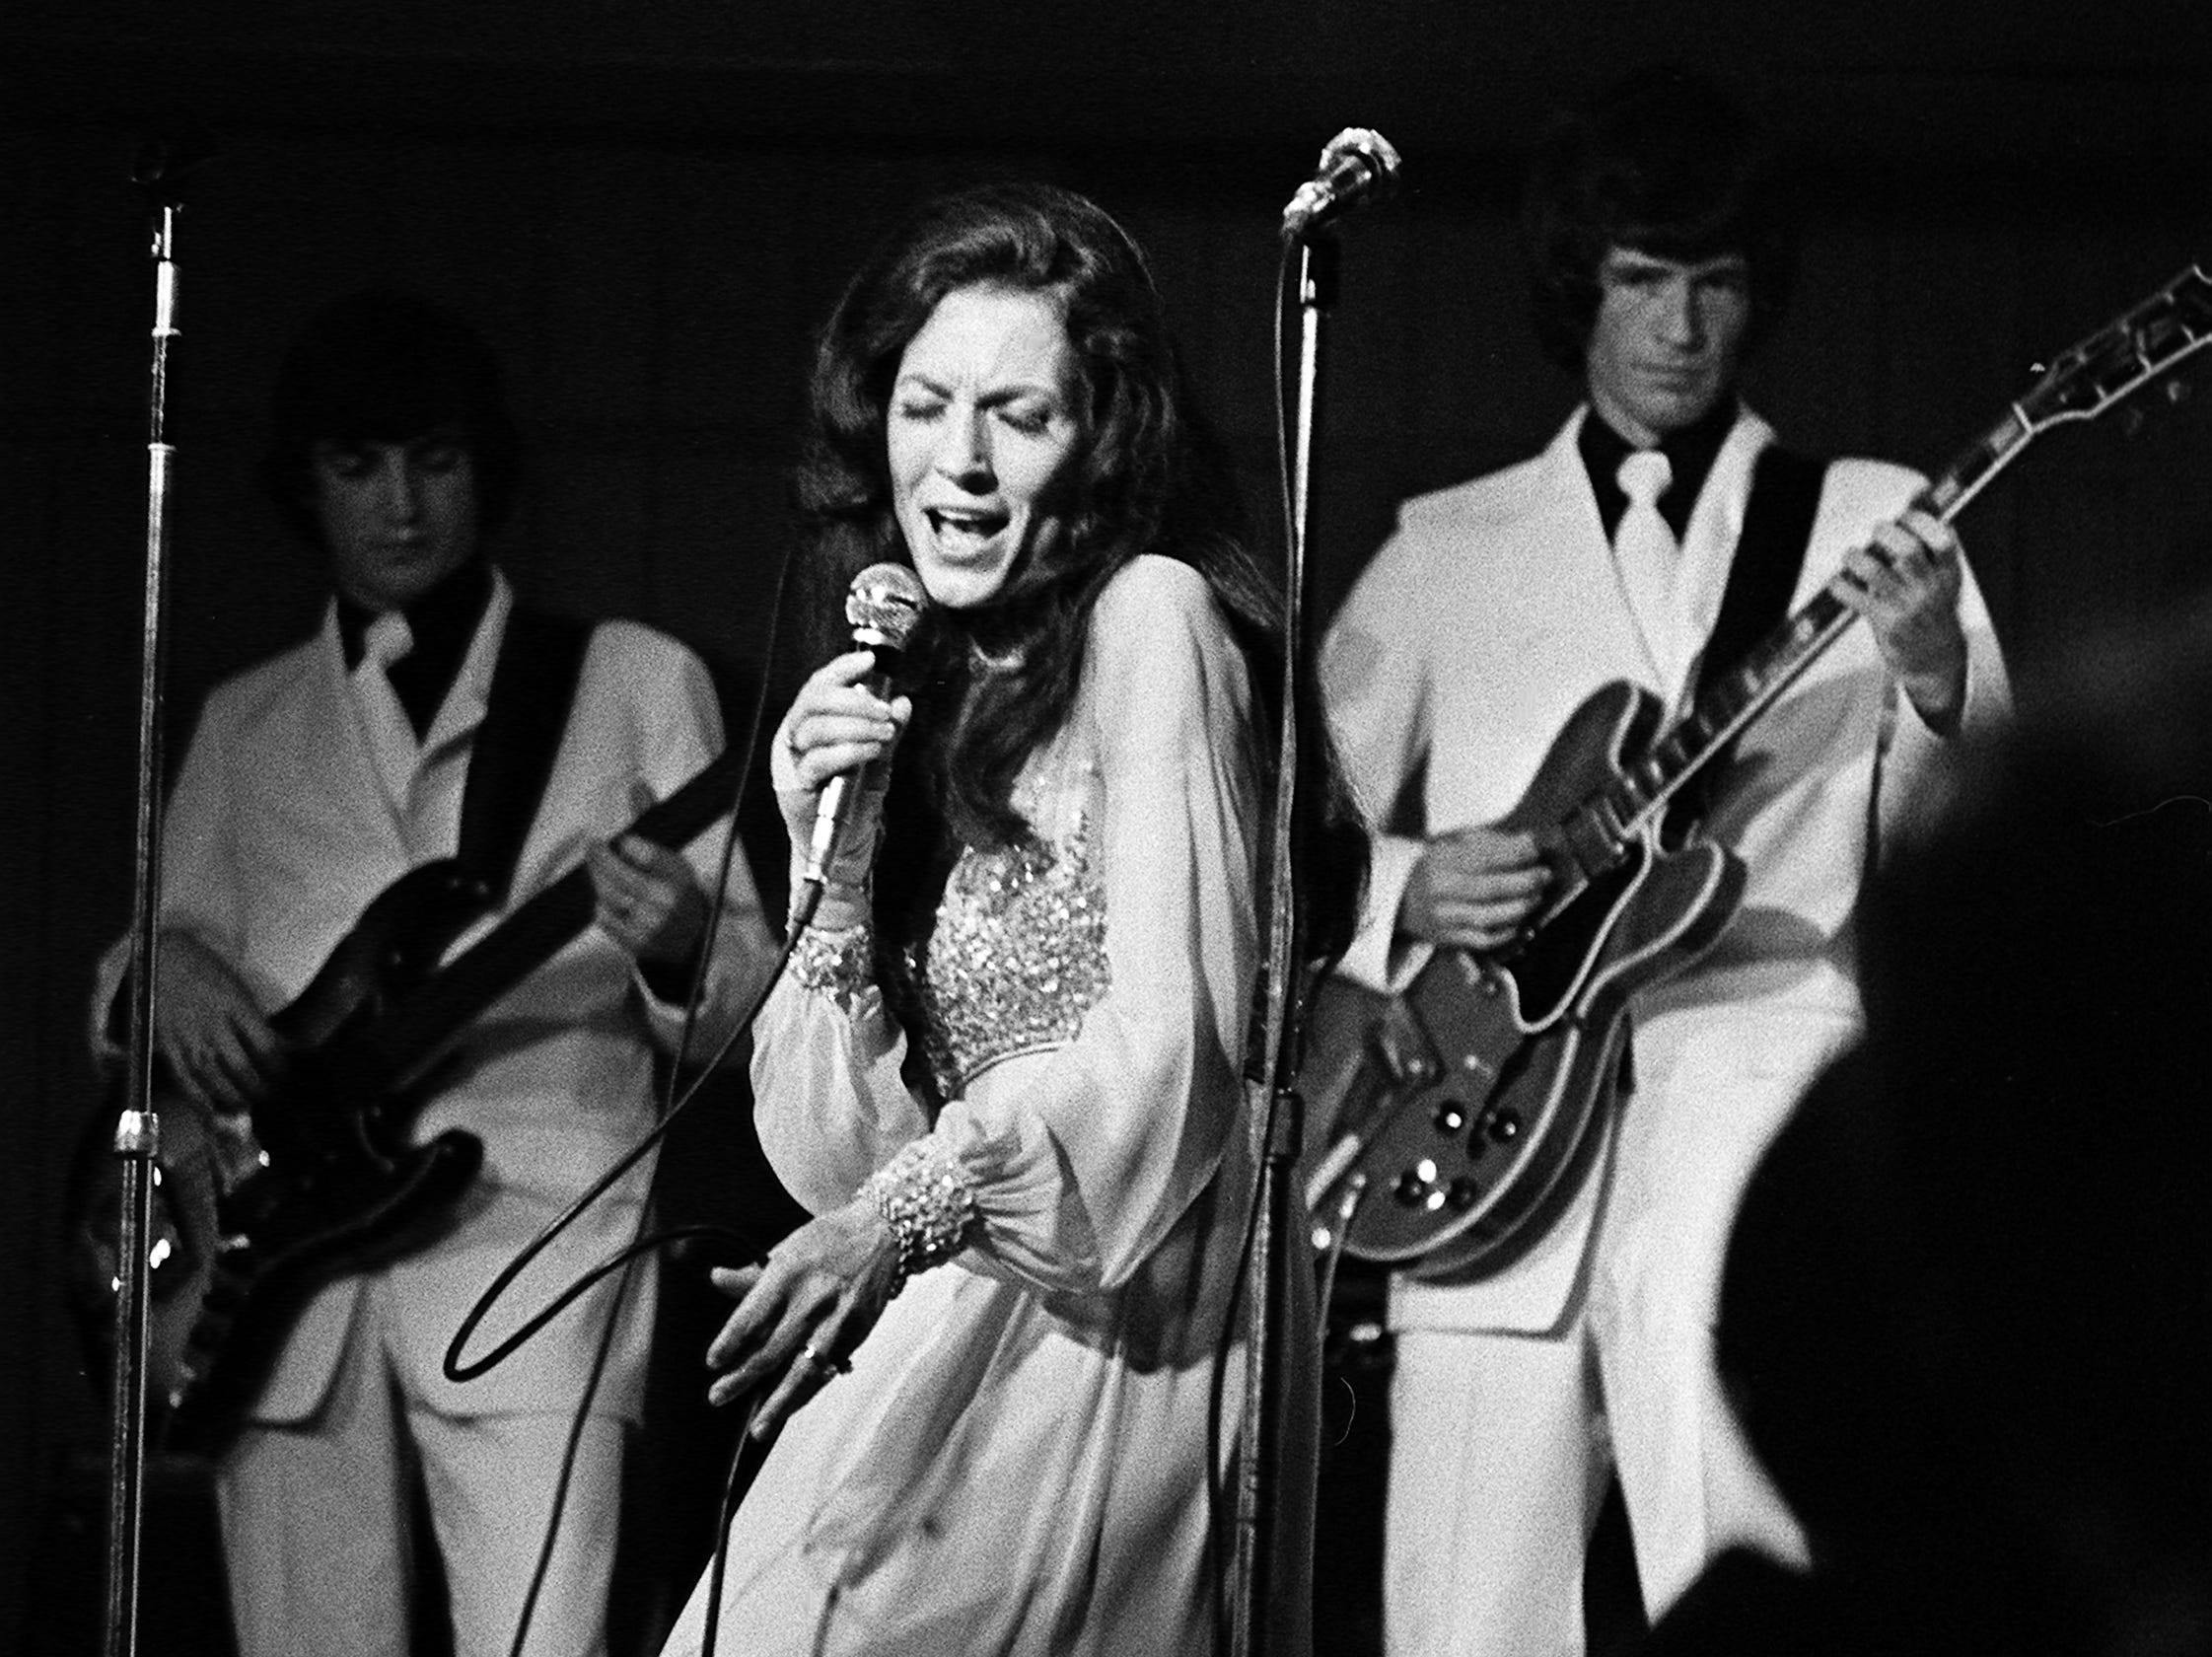 Loretta Lynn performs for 700 fans that turned out for a $20-a-plate dinner sponsored by the International Fan Club Organization at the Sheraton Downtown Nashville June 6, 1973. It was the first night of the second annual Country Music Fan Fair.